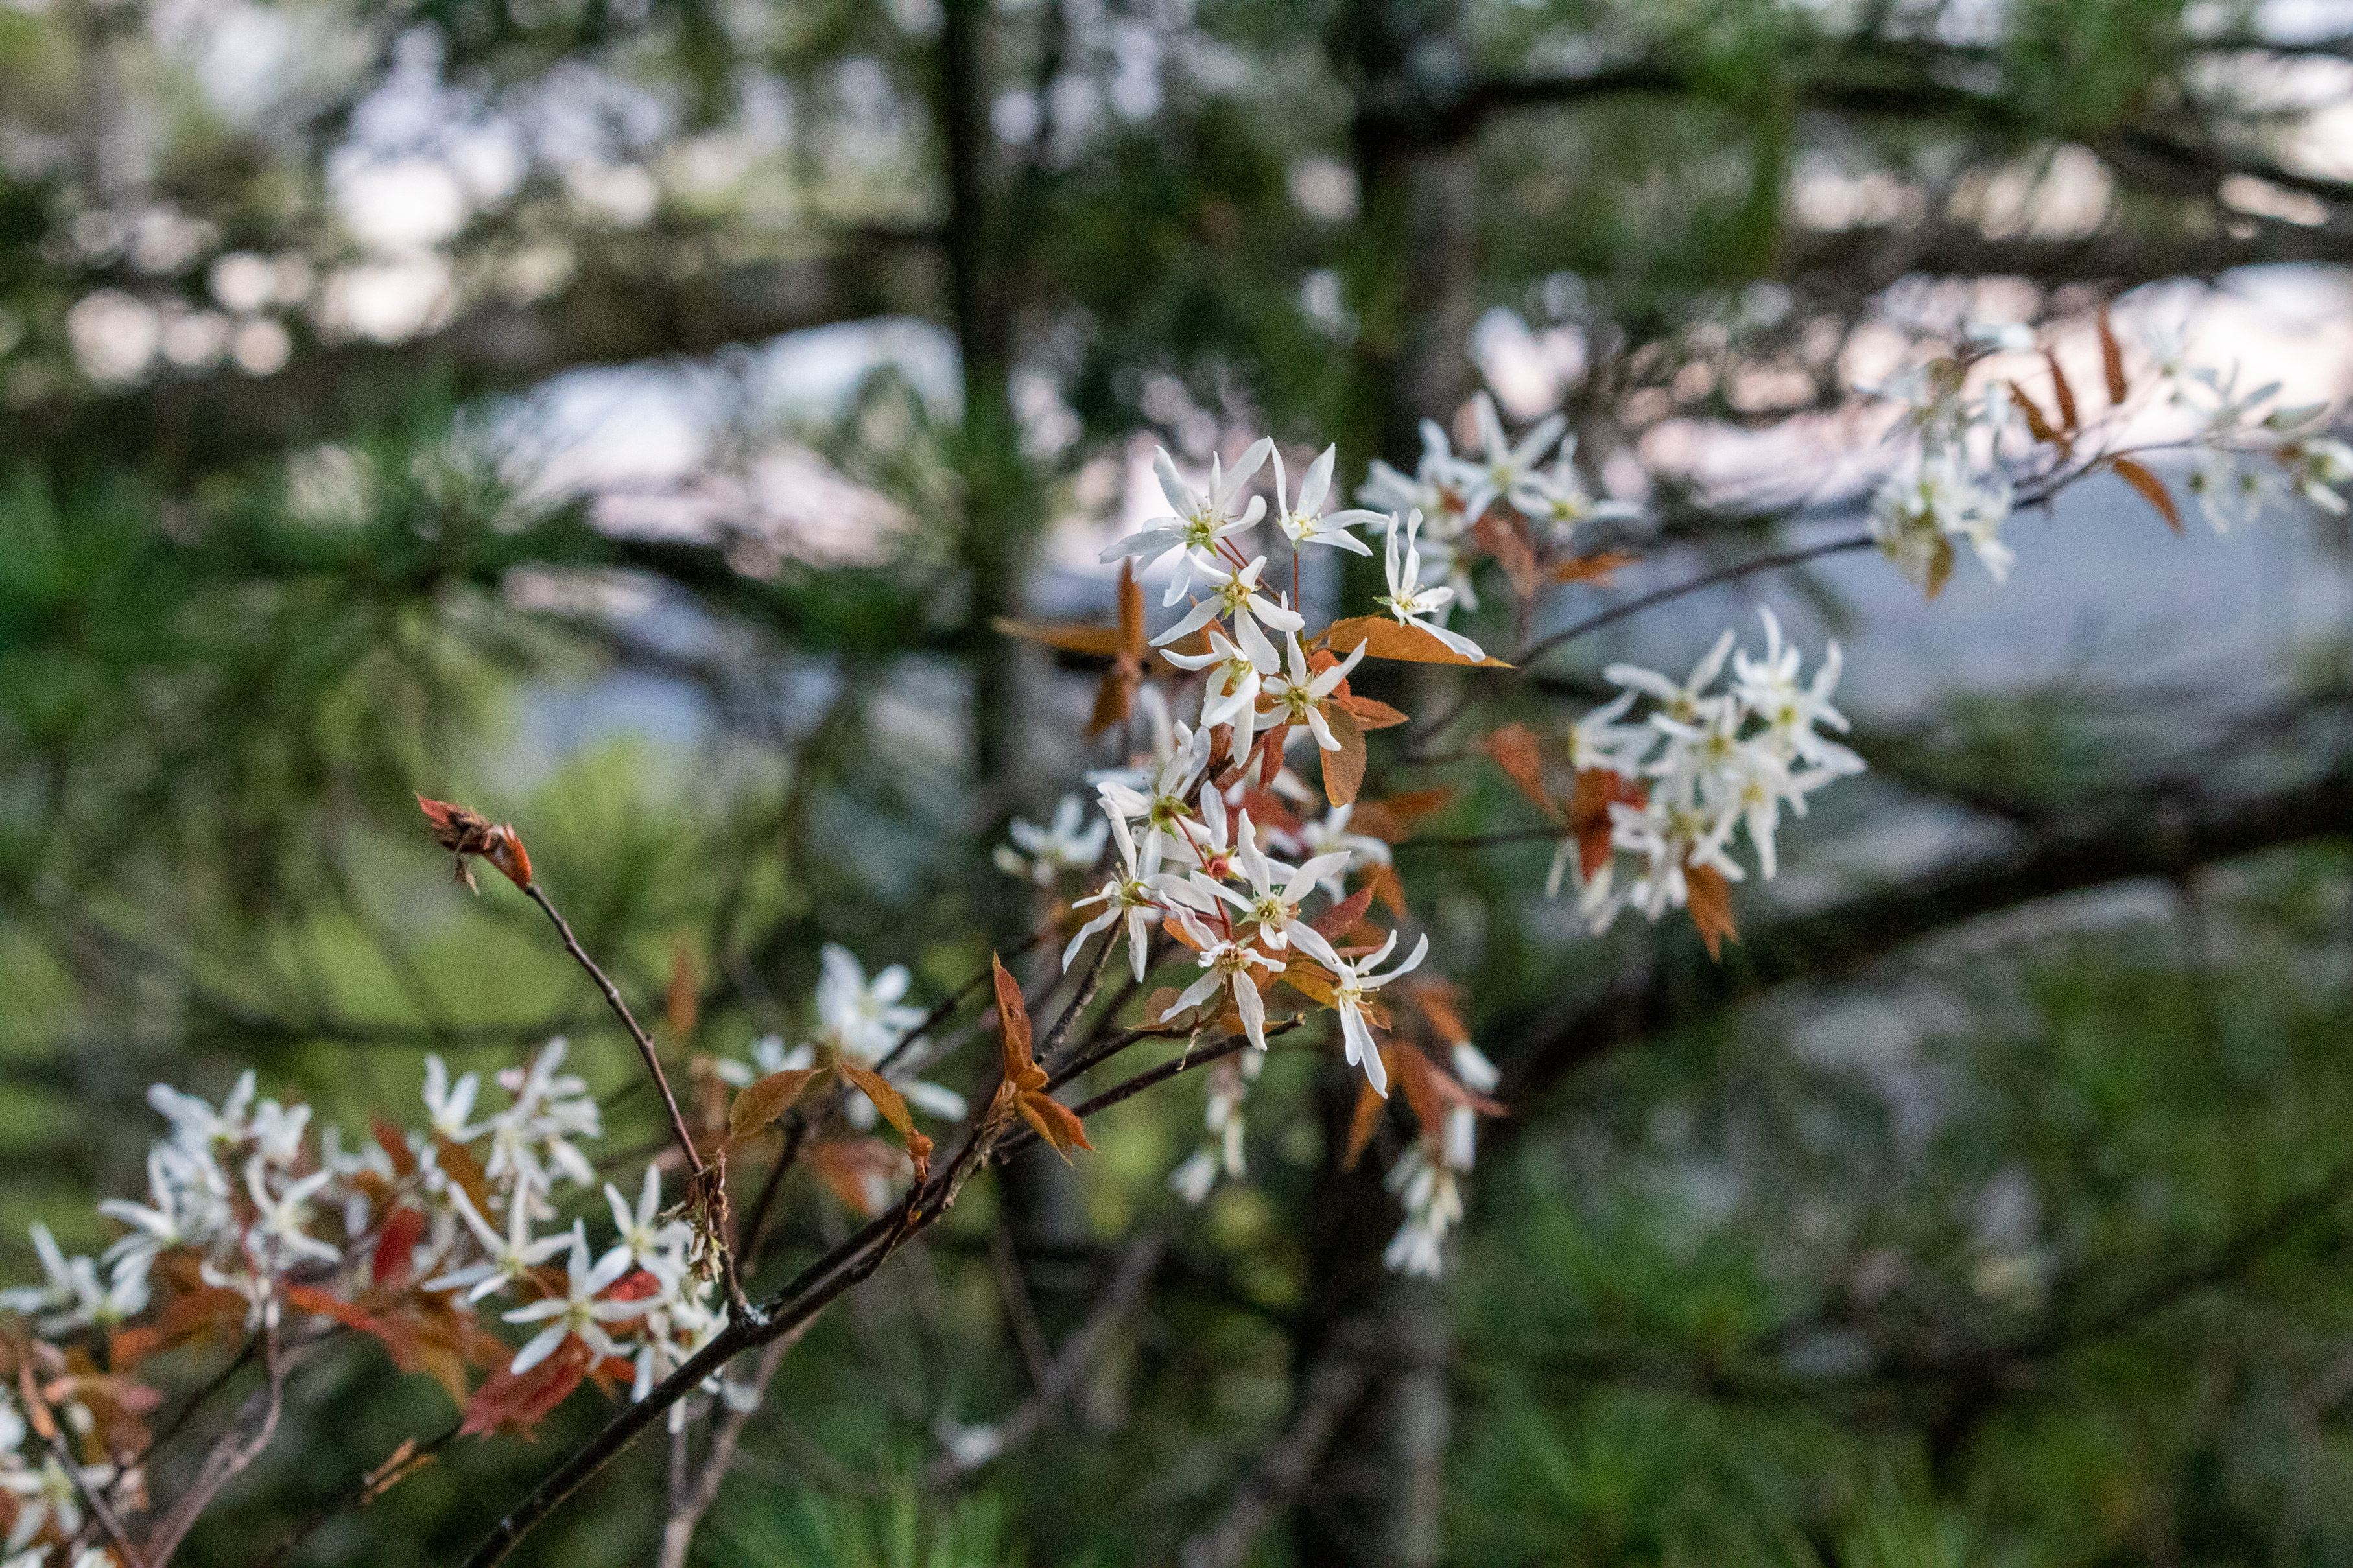 Little white flowers blossoming on a tree branch